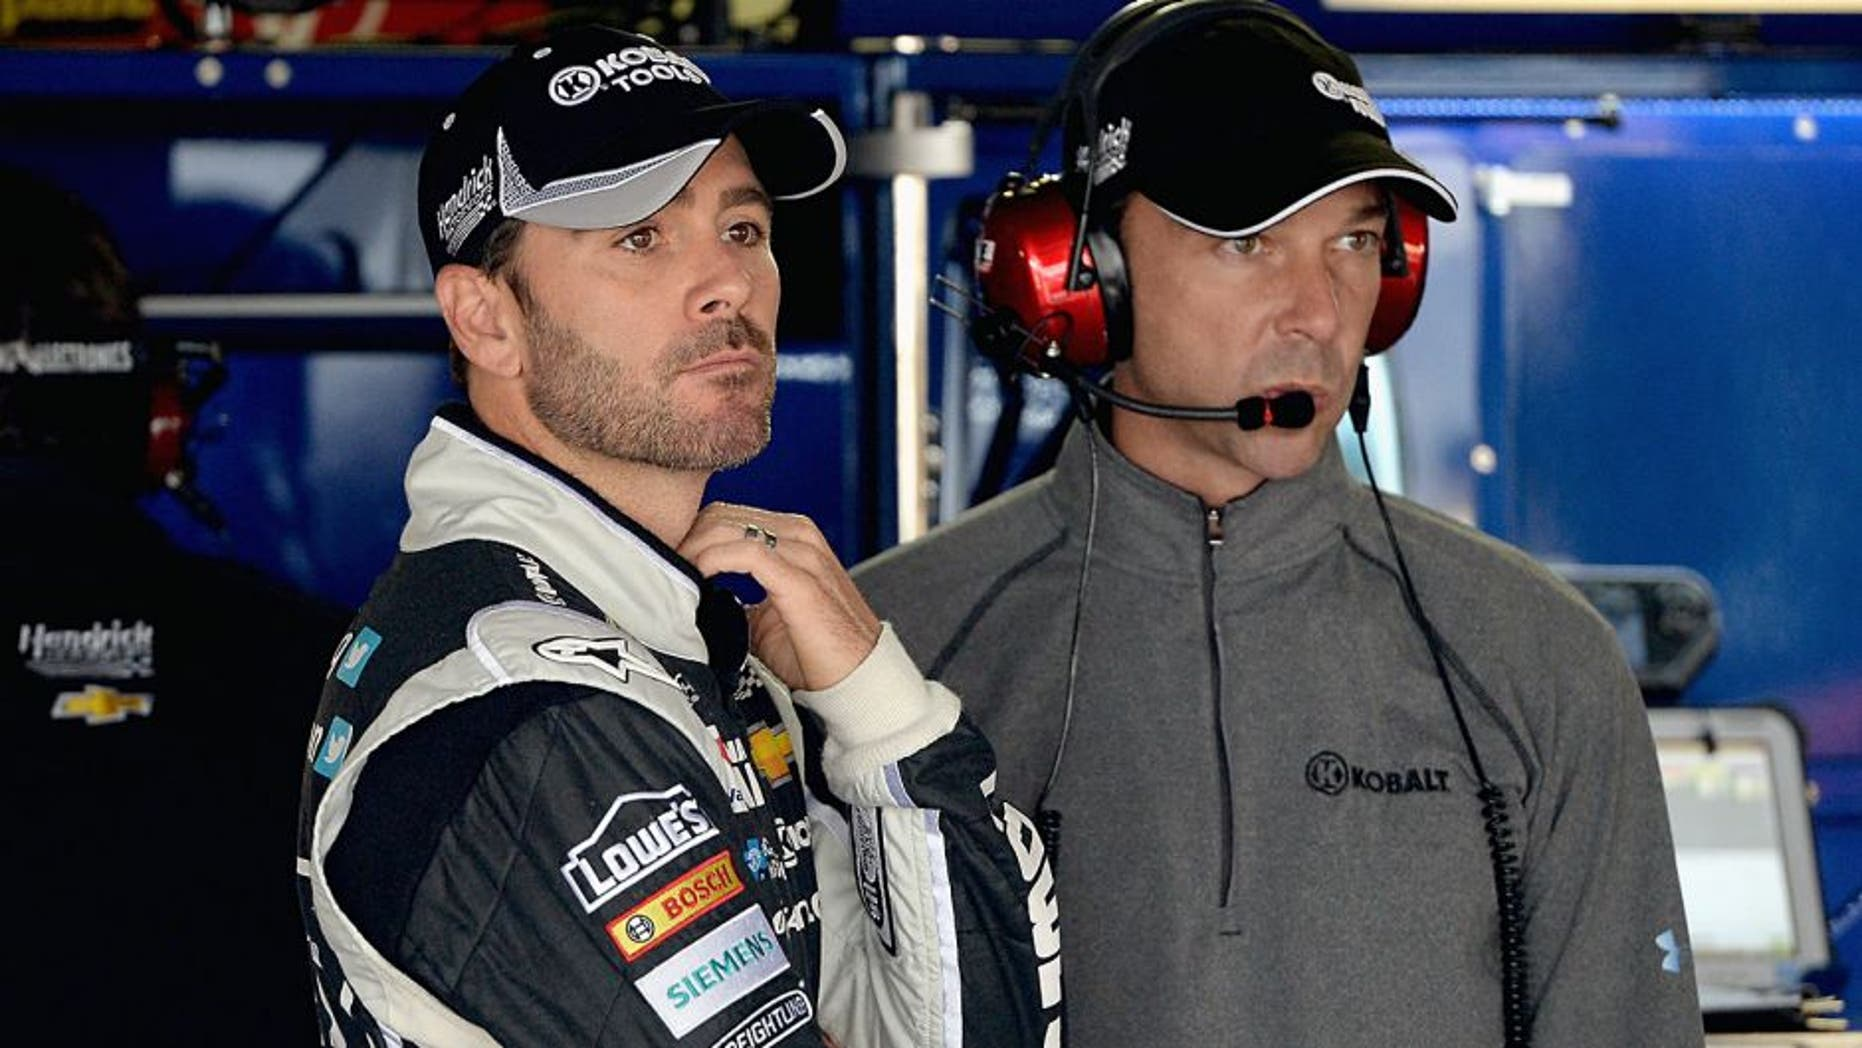 DOVER, DE - MAY 30: Jimmie Johnson, left, driver of the #48 Lowe's/Kobalt Tools Chevrolet, and crew chief Chad Knaus looks on in the garage area during practice for the NASCAR Sprint Cup Series FedEx 400 Benefiting Autism Speaks at Dover International Speedway on May 30, 2014 in Dover, Delaware. (Photo by Patrick Smith/Getty Images)